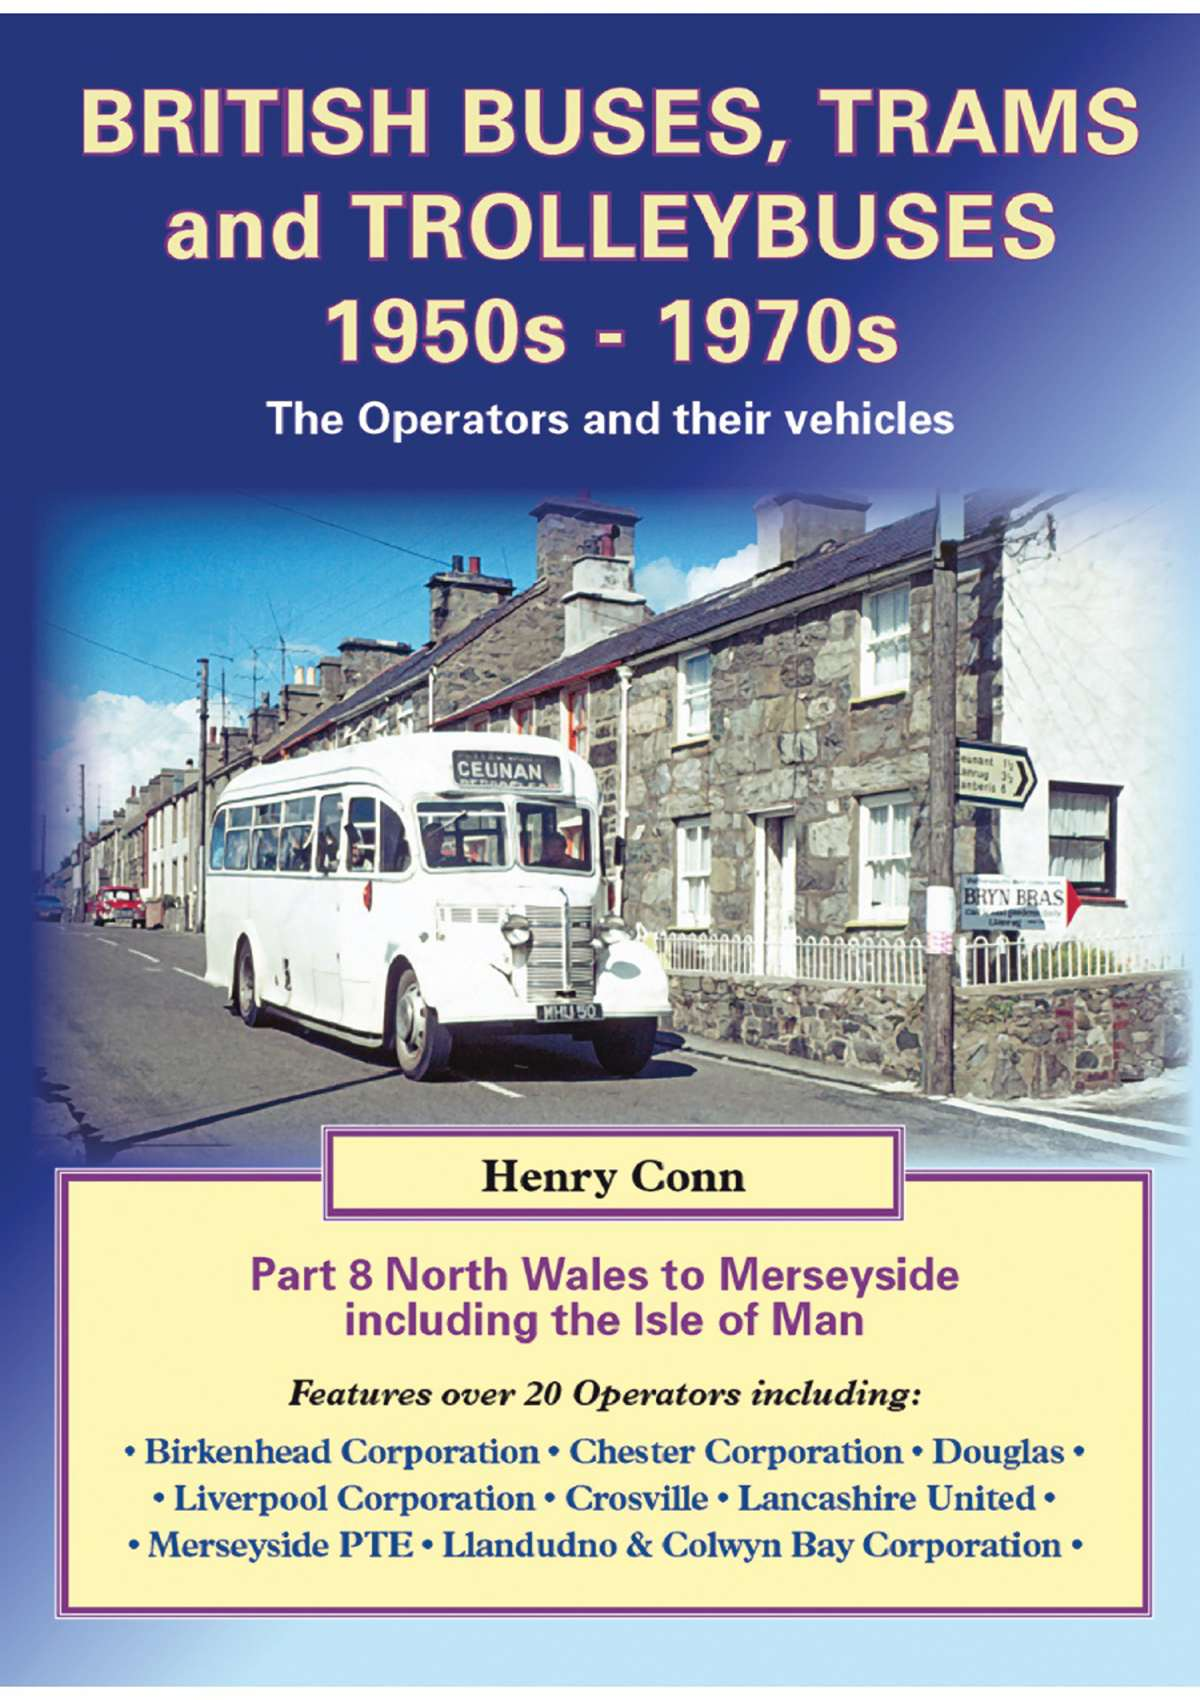 3948 - Buses & Trolleybuses Part 8: North Wales to Merseyside including the Isle of Man